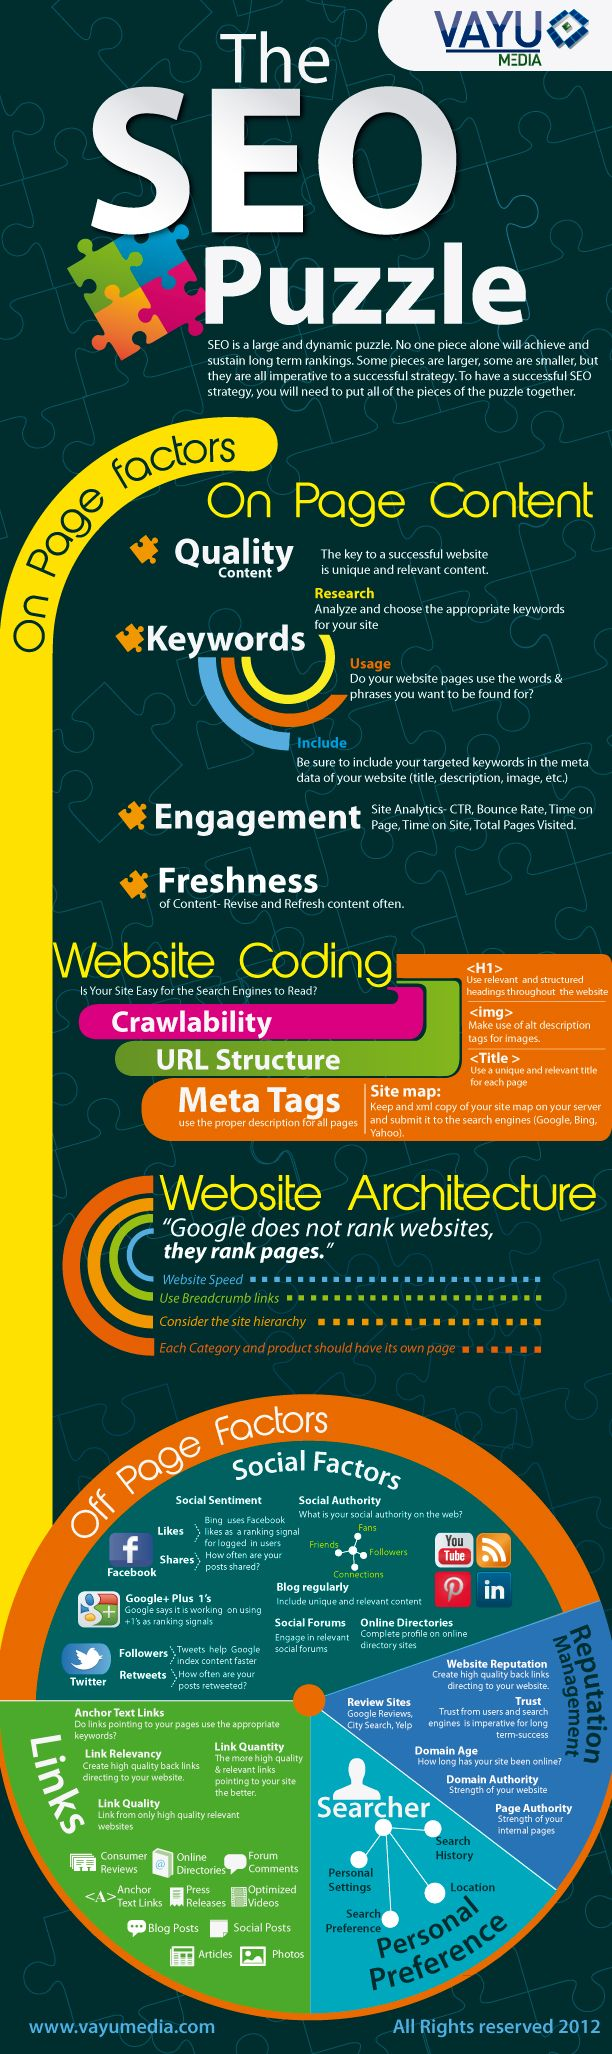 THE SEO PUZZLE: Seopuzzl, Seo Puzzles, Social Media, Searchengin, Seo, Search Engine Optimism, Socialmedia, Seo Infographic, Puzzles Infographic